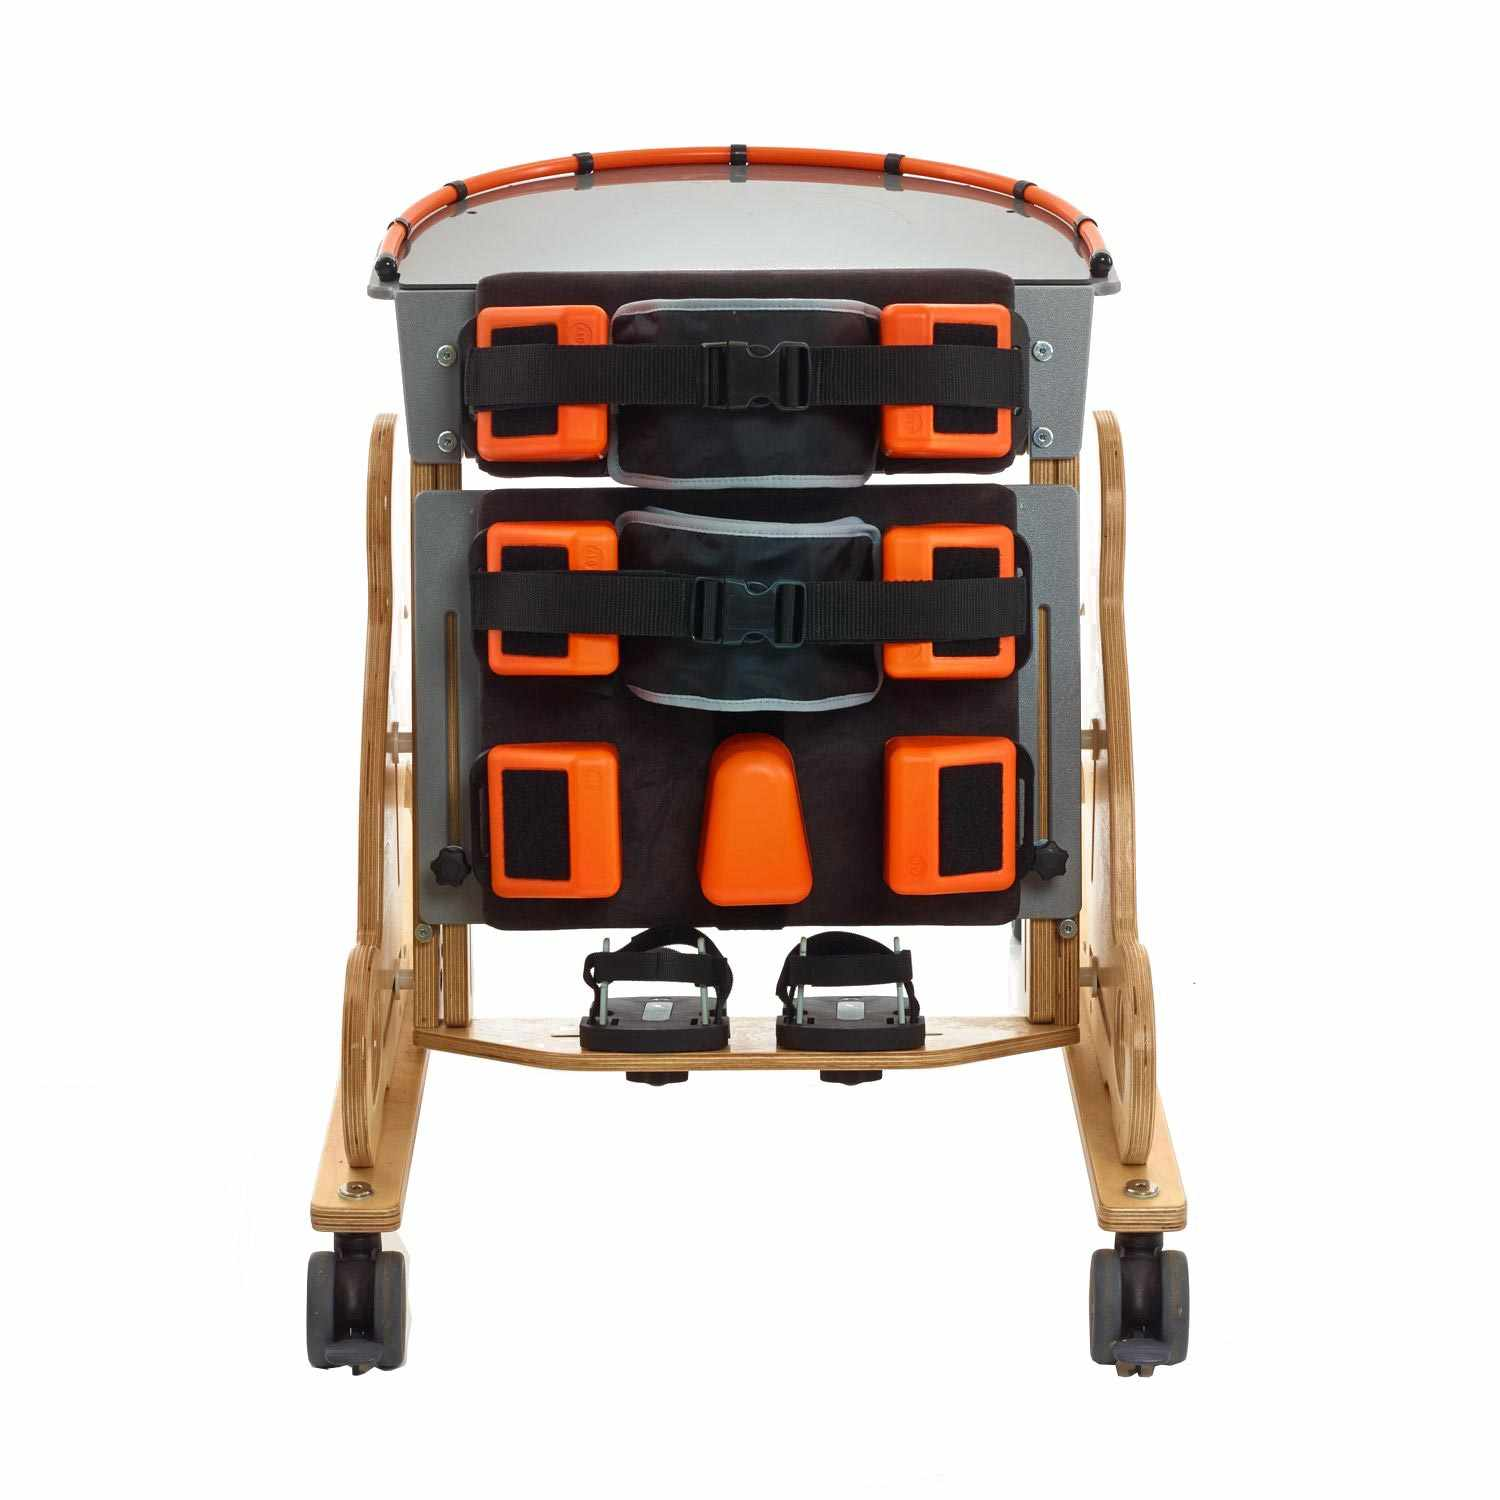 Jenx monkey stander - Chest, hip and leg support